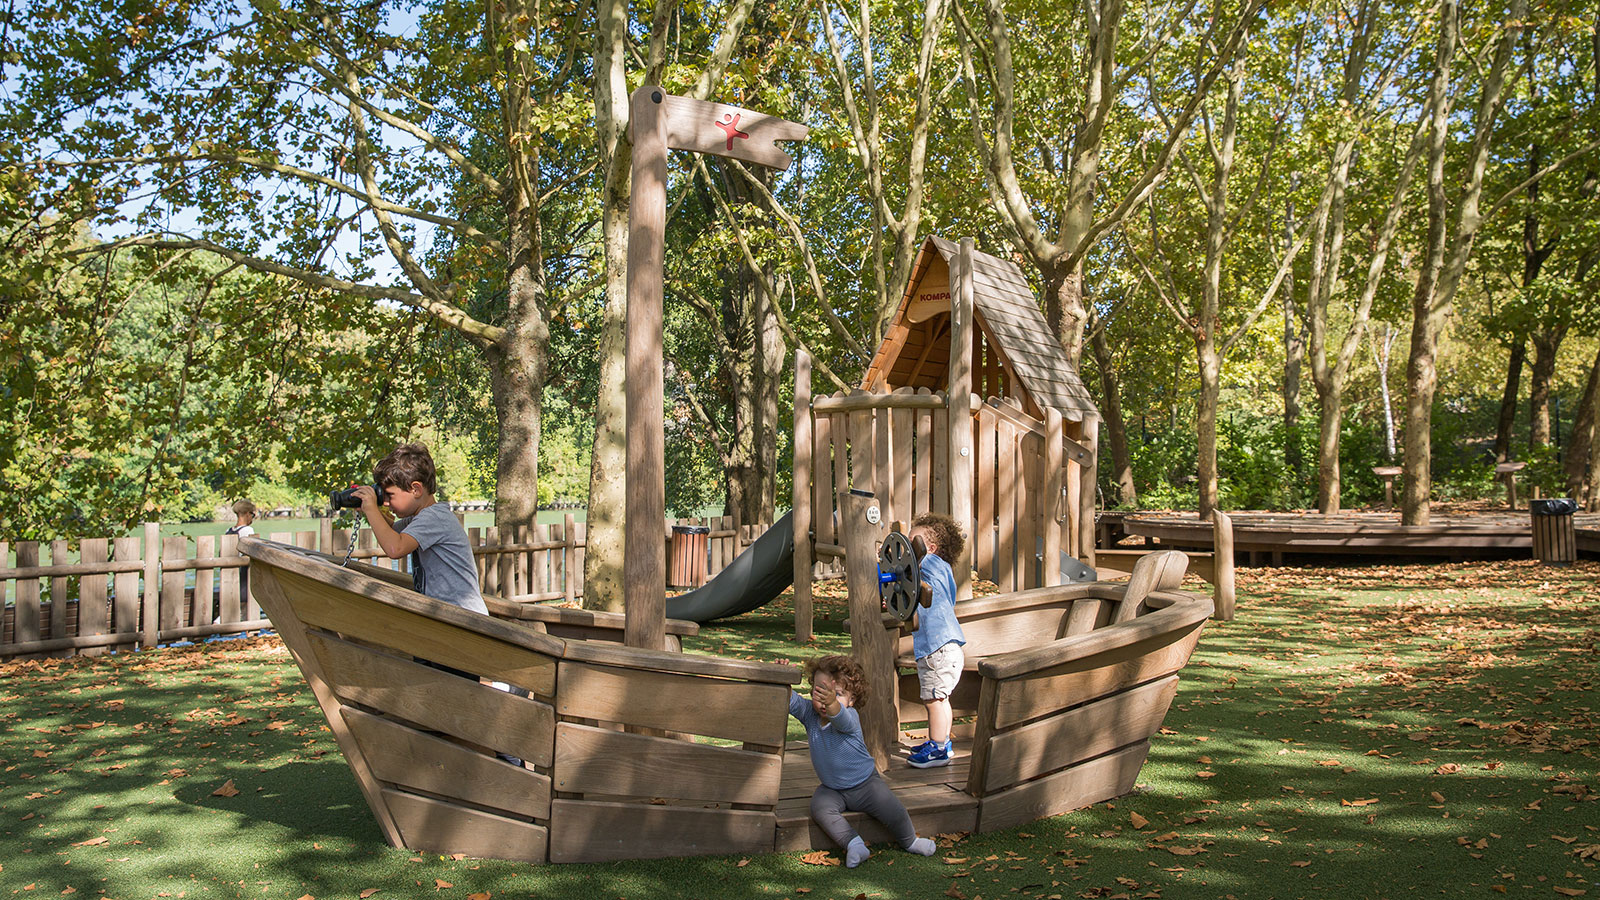 Maisons-Alfort-Playground_Playsection_Boat.jpg